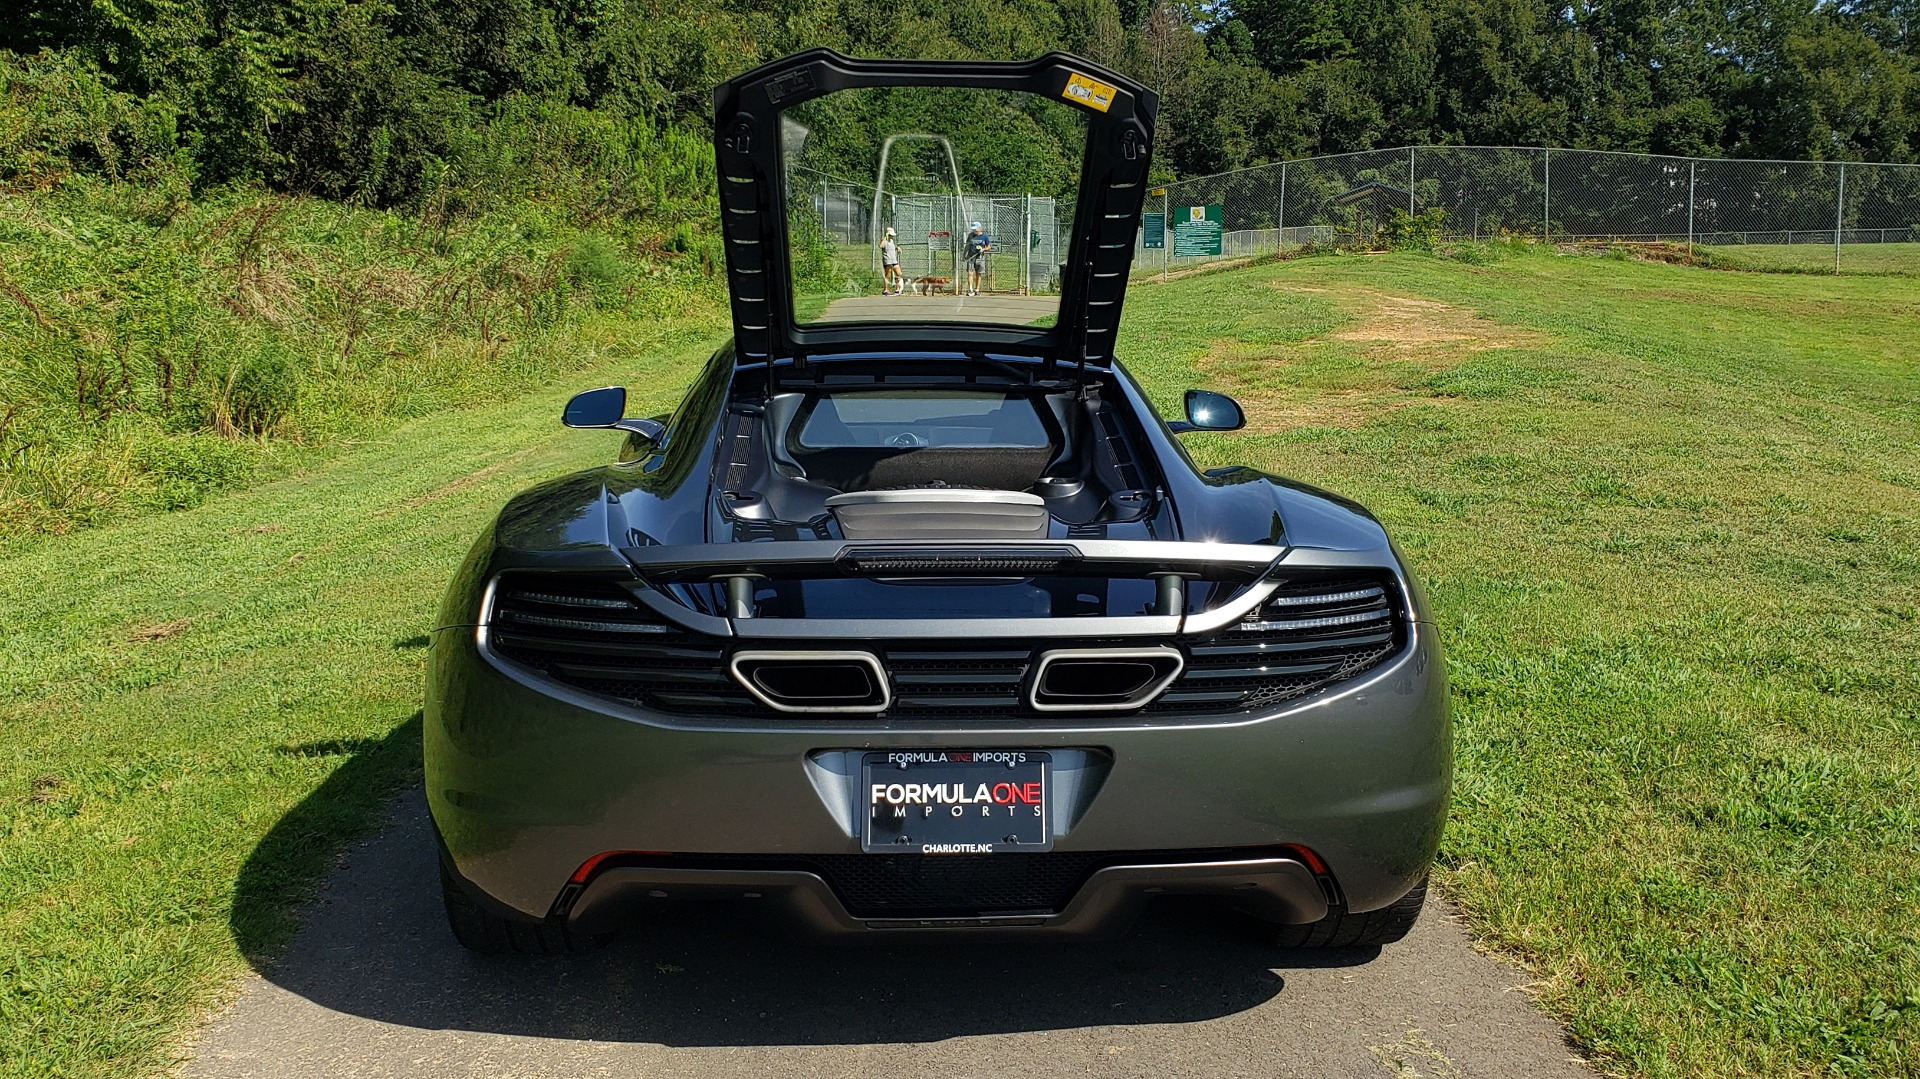 Used 2012 McLaren MP4-12C COUPE / 3.8 L V8 592HP / AUTO / NAV / CCB / LOW MILES for sale Sold at Formula Imports in Charlotte NC 28227 34